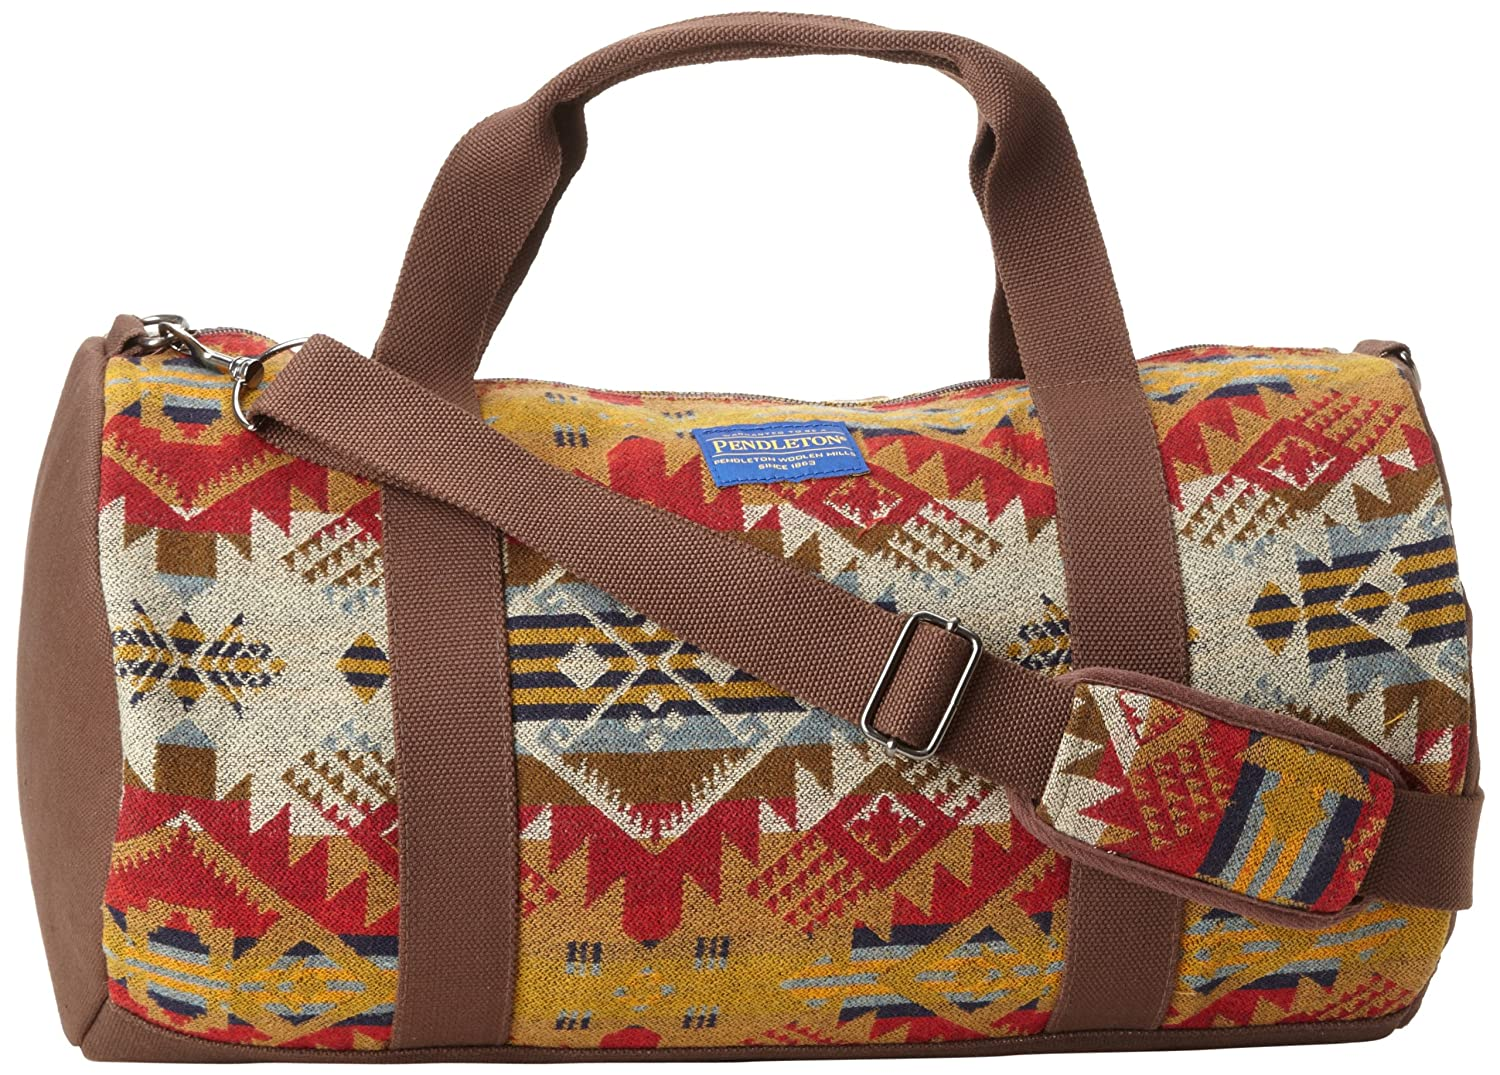 Pendleton Woolen Mills Journey West Duffle Bag - Tan Mini Journey West   Amazon.co.uk  Clothing e8f1e9b8e3b20